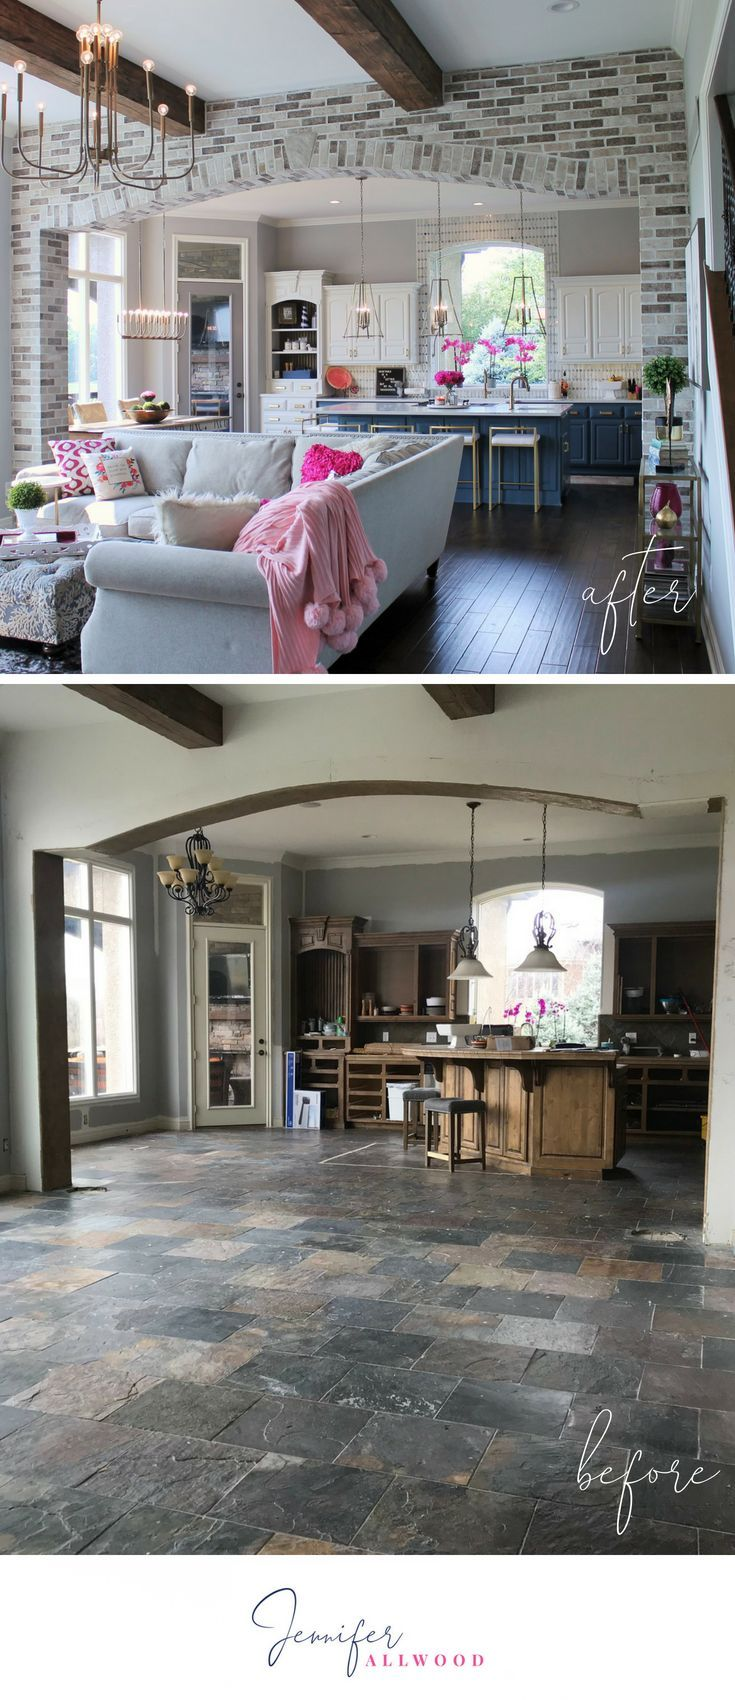 Our Light Brick Archway in the Kitchen & Hearth Room images